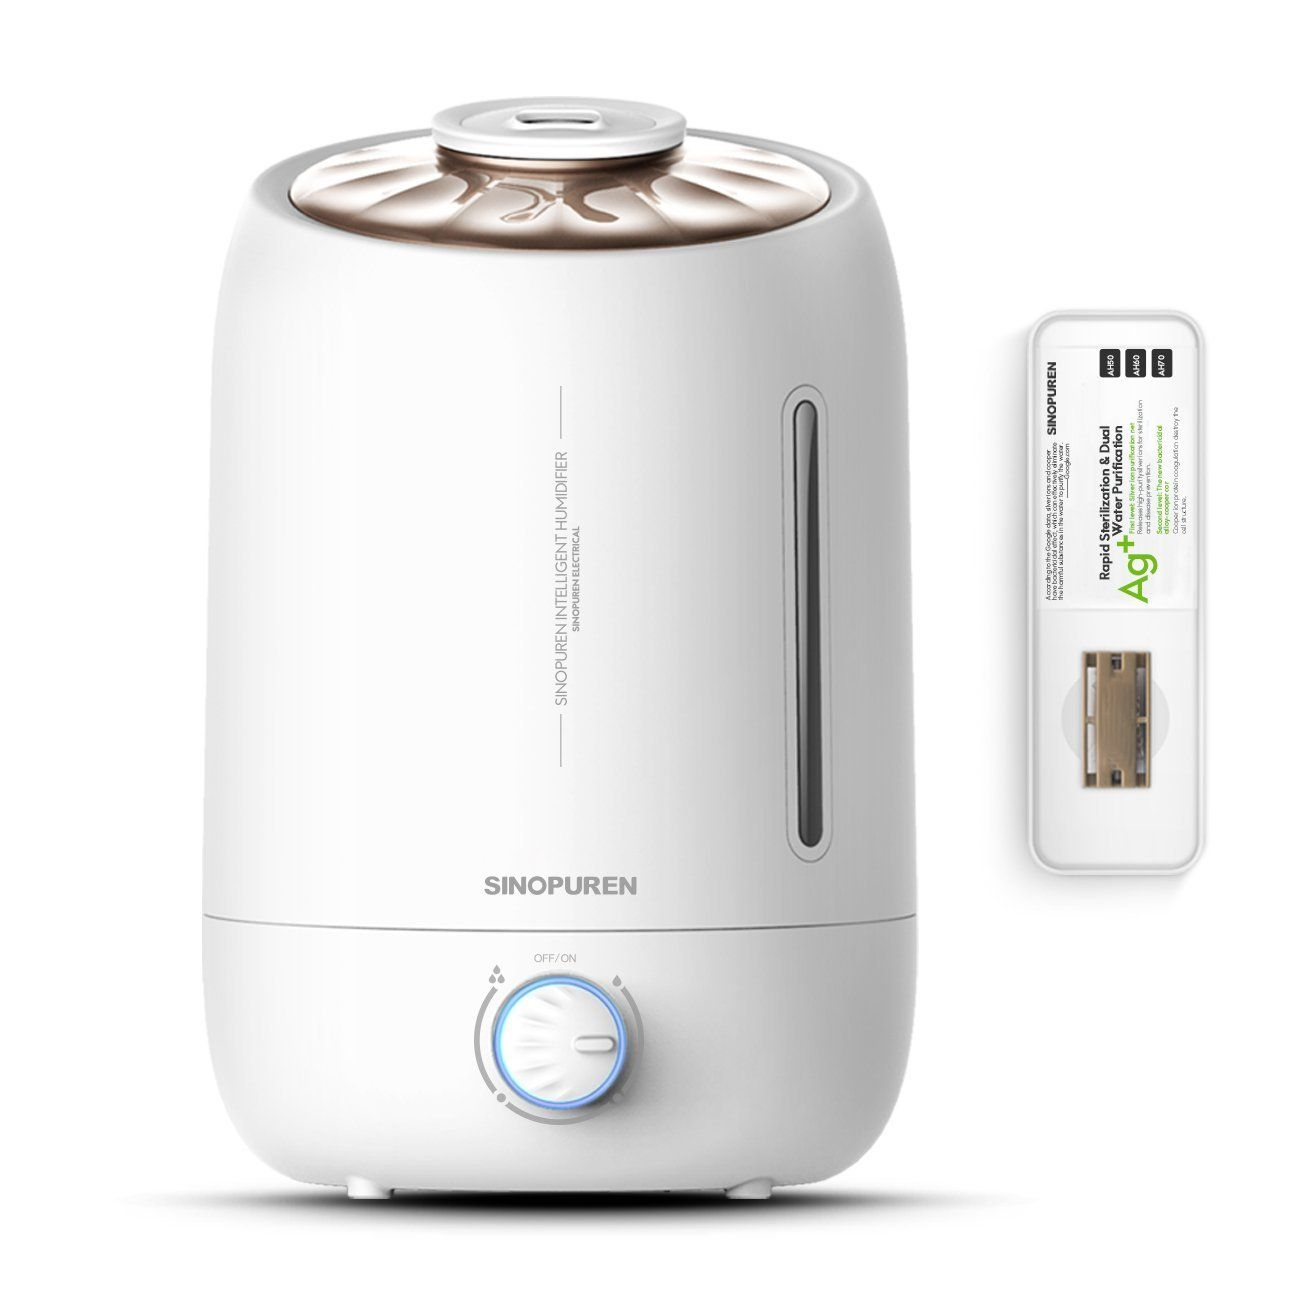 What Is The Best Humidifier To Buy Top 5 Models Compared Ultrasonic Cool Mist Humidifier Cool Mist Humidifier Cleaning Appliances